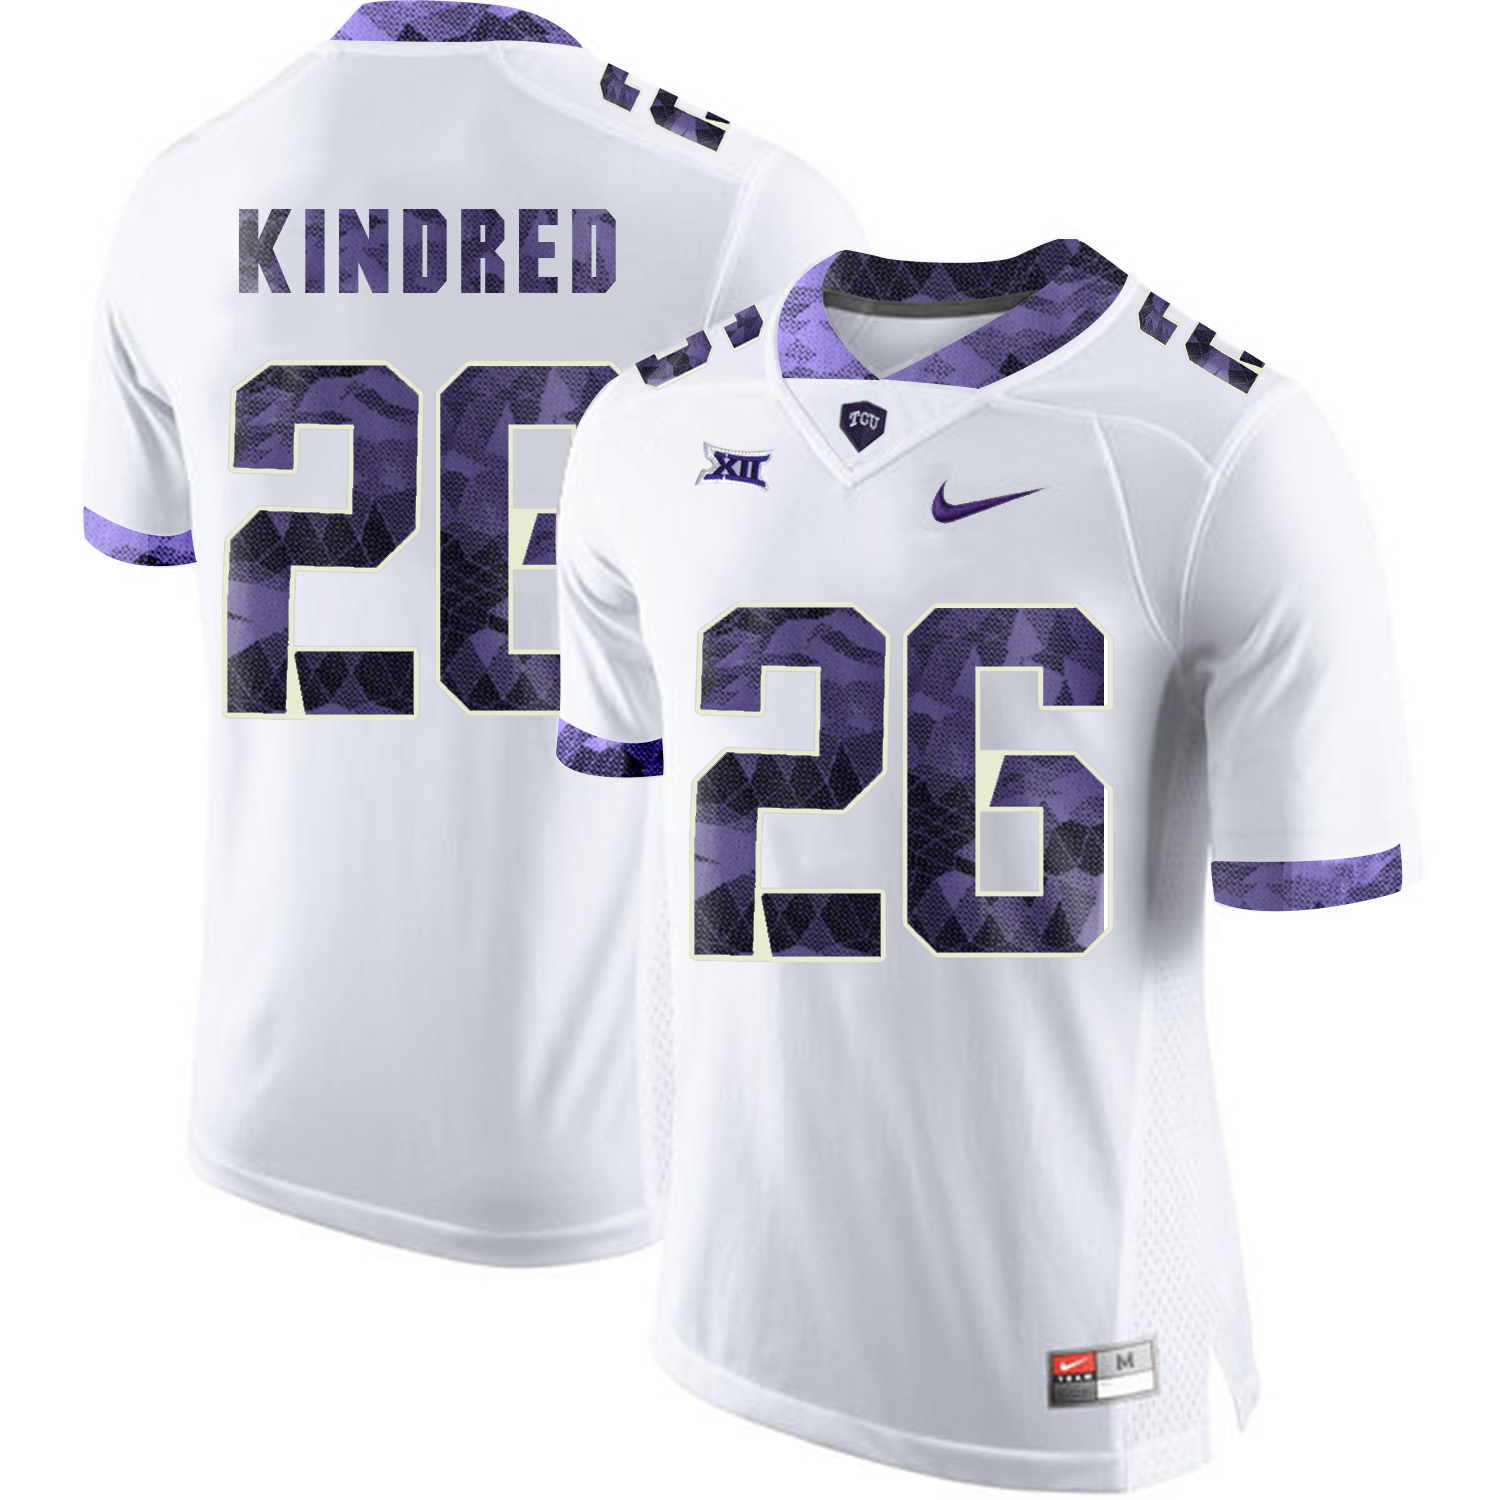 TCU Horned Frogs 26 Derrick Kindred White Print College Football Limited Jersey